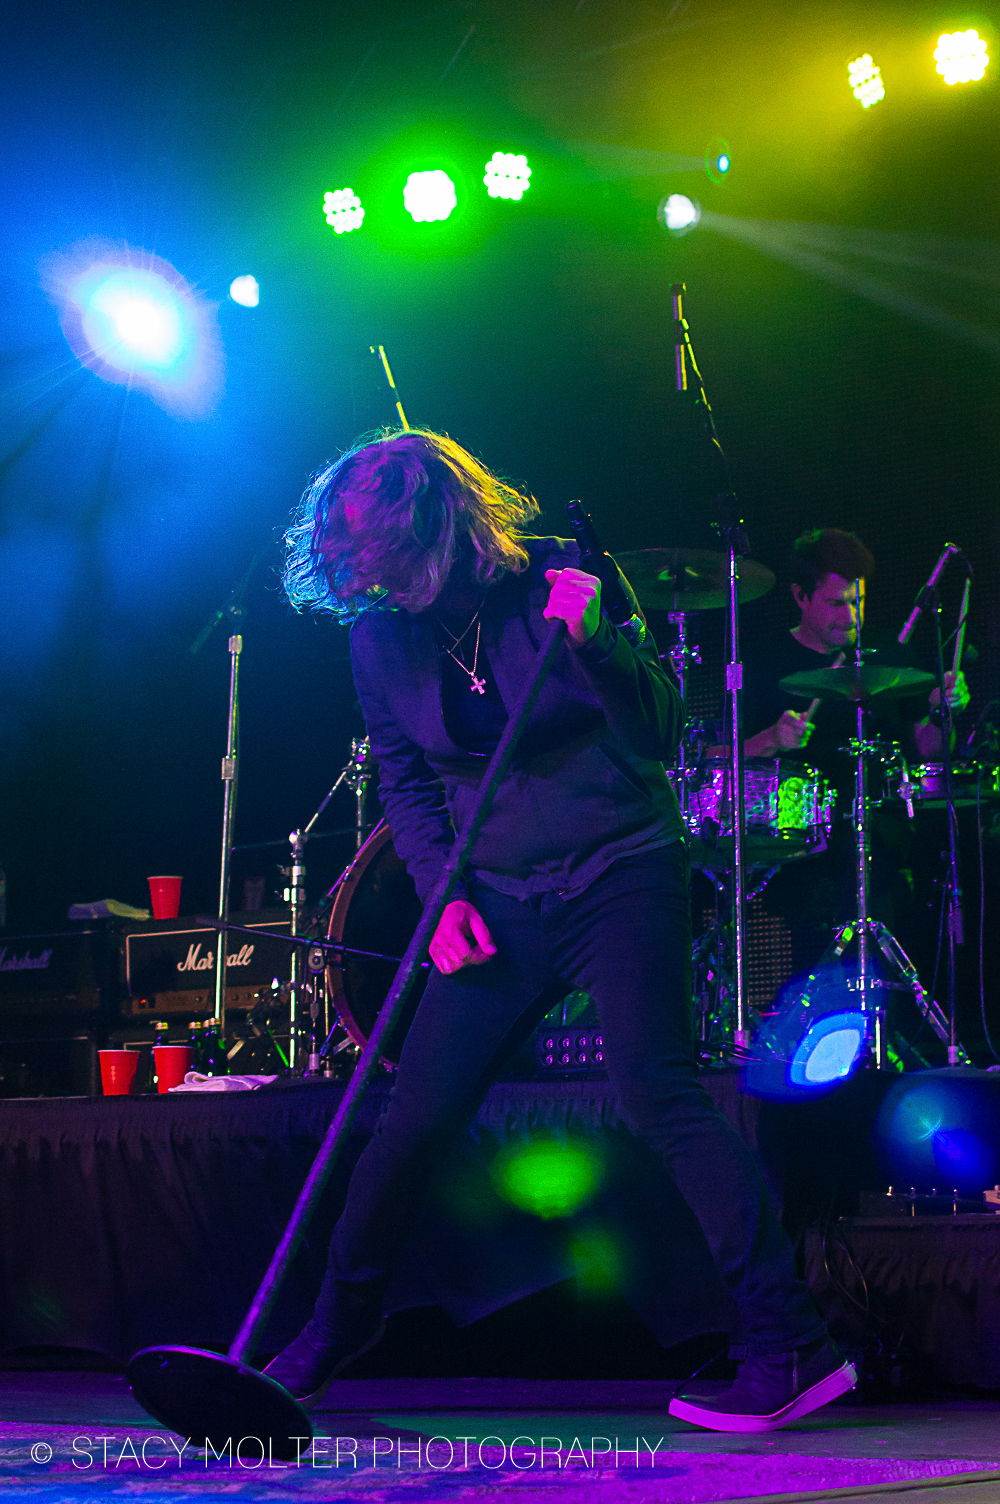 How to Shoot Concert Photography